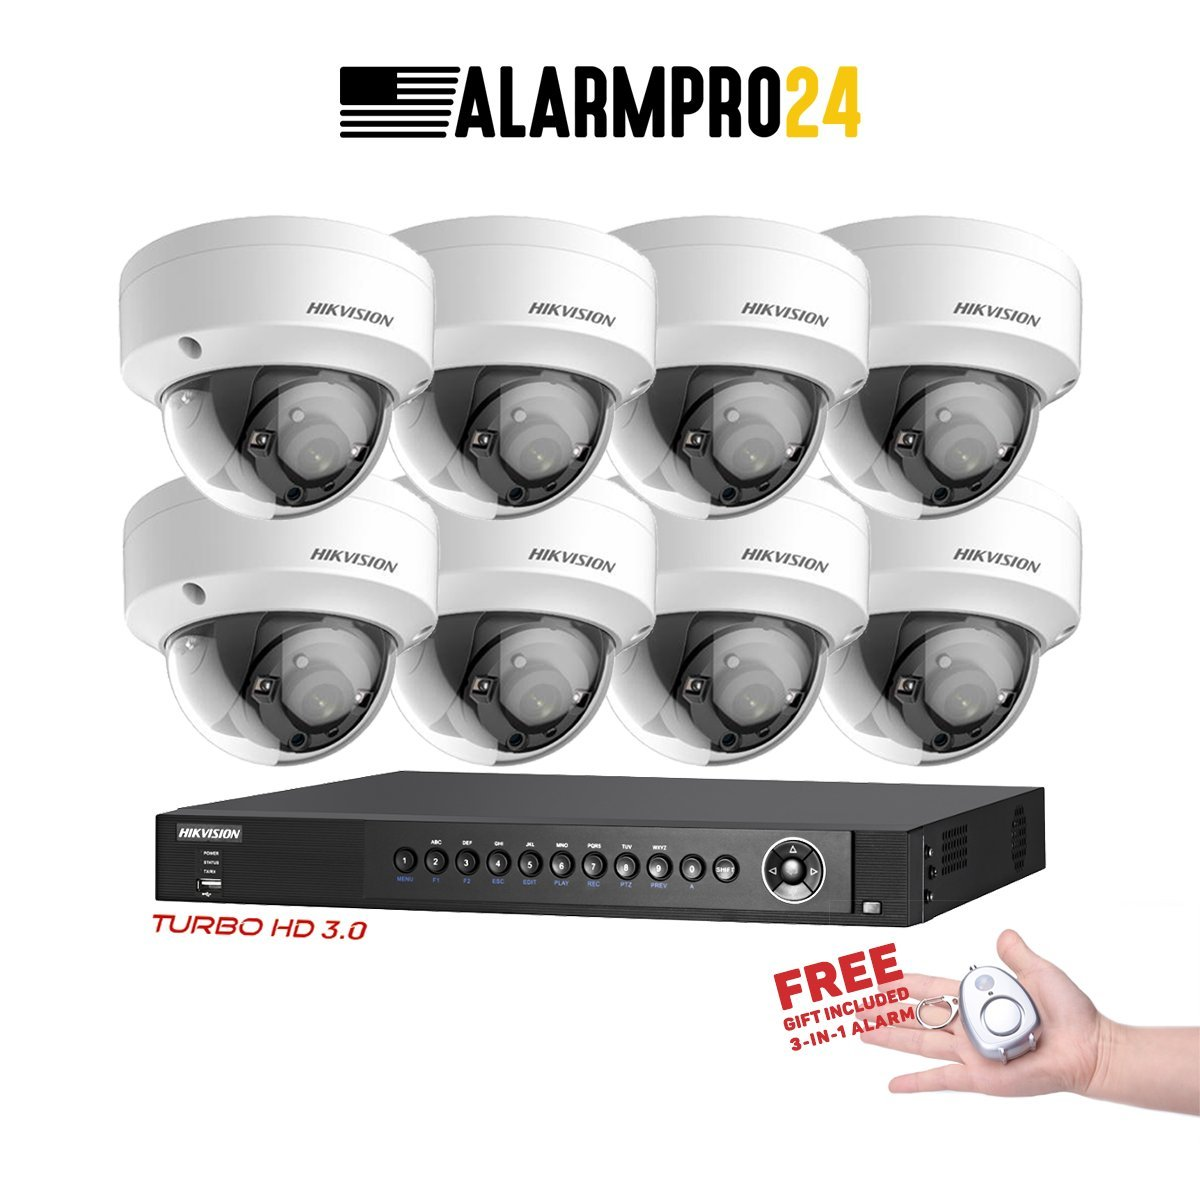 Hikvision USA 16 Channel Turbo HD Surveillance Kit +(8) x 2 Megapixel Hikvision EXIR Dome Cameras Special Package FREE Gift included Electronics